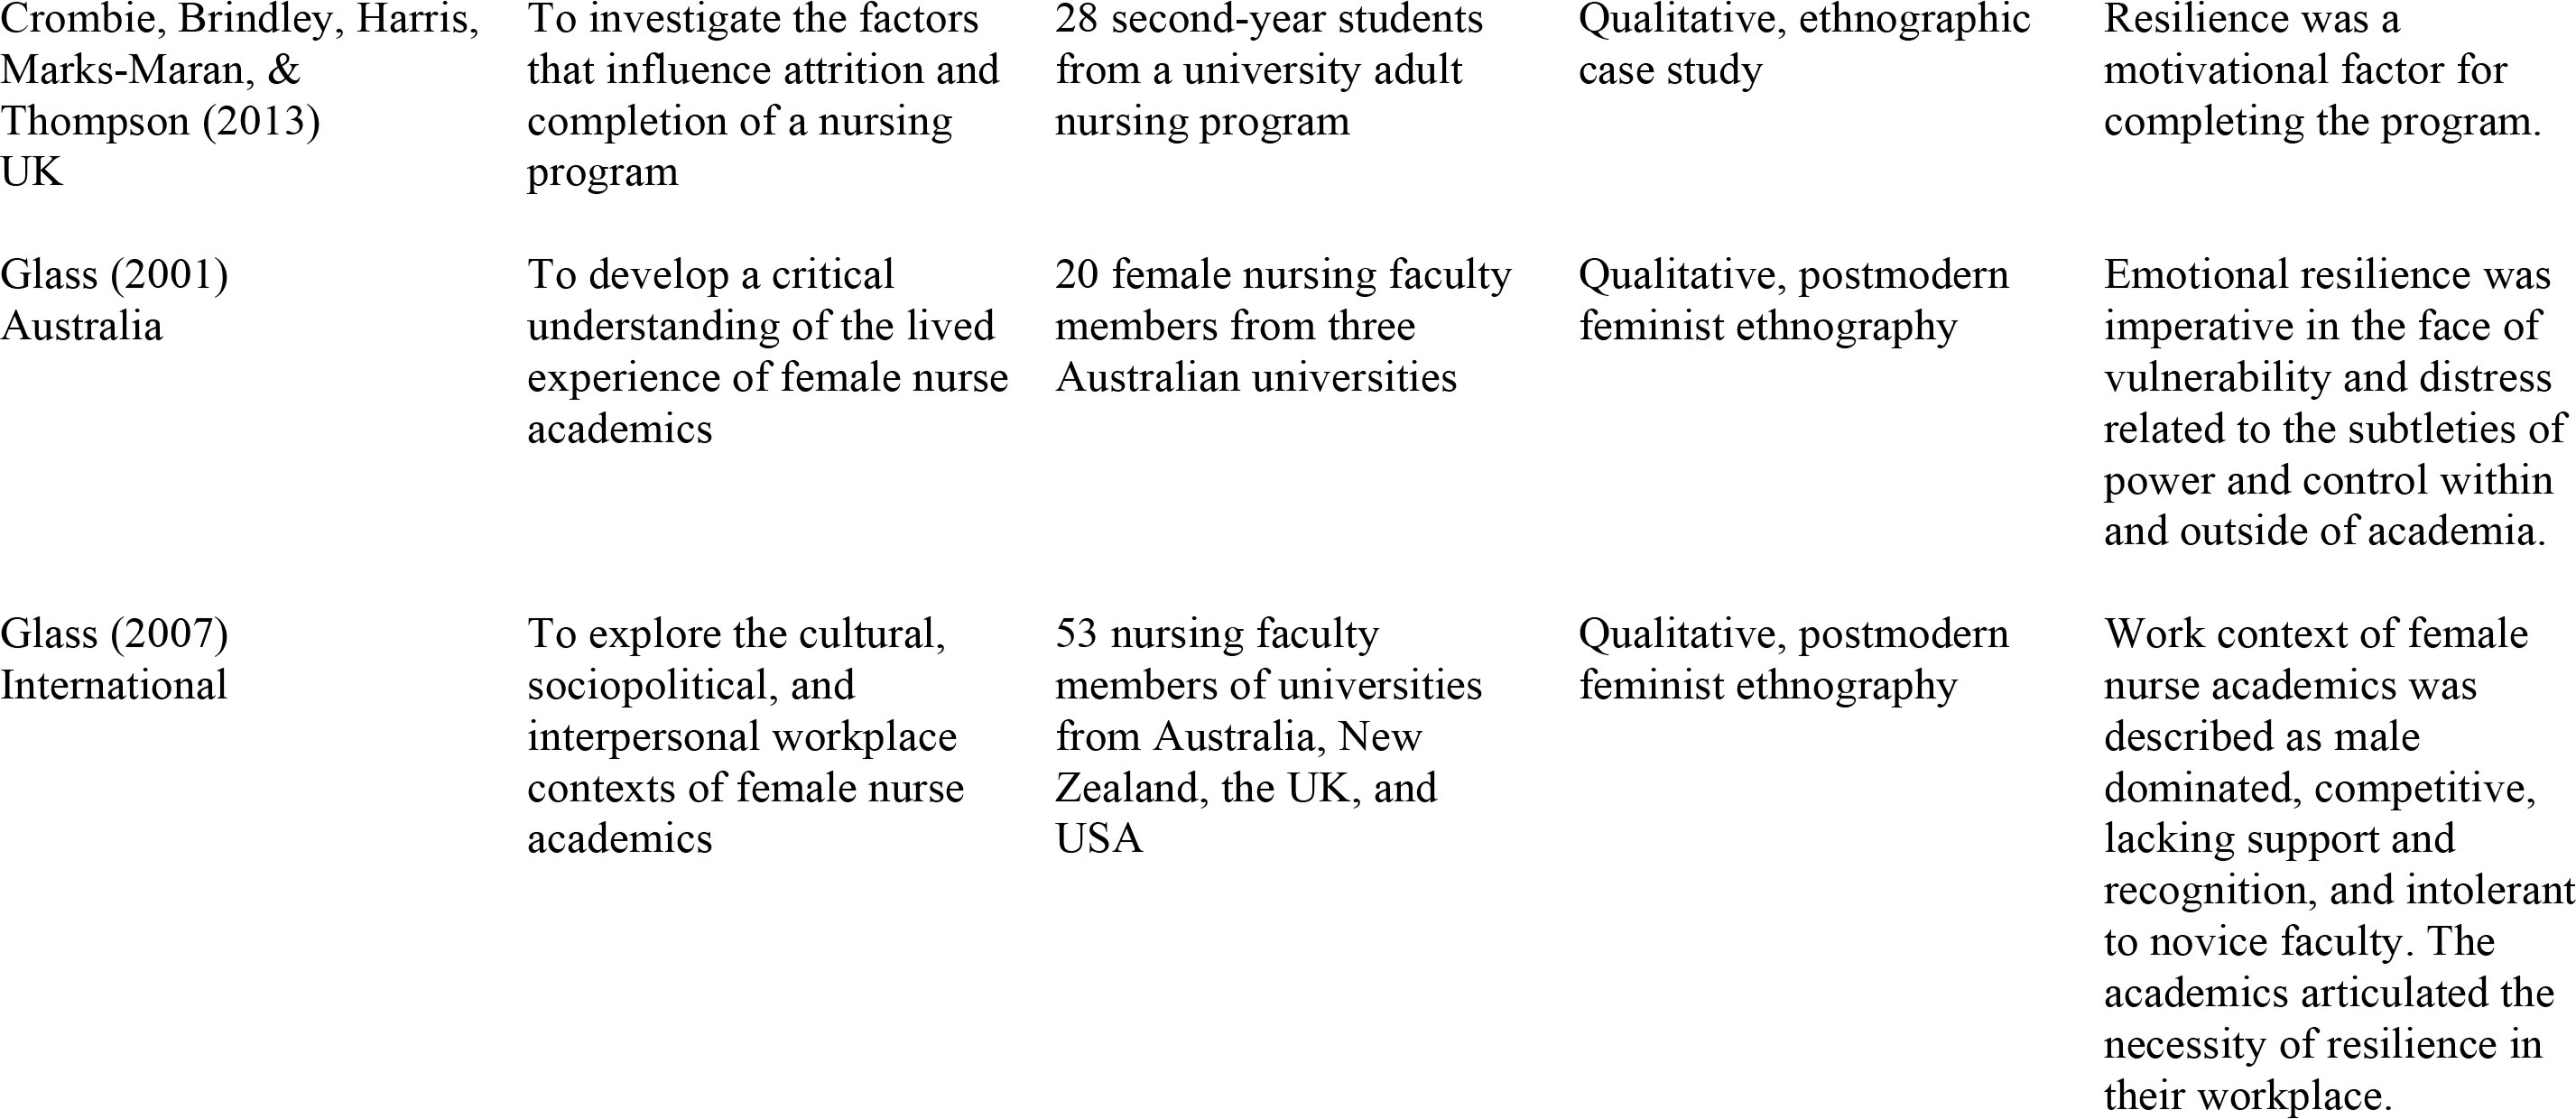 nursing 6052 qualitative research Quantitative and qualitative research review the quantitative and qualitative research article examples included under the examples of two types of research submit 3/4 page explaining the difference between quantitative and qualitative research, in your own words.